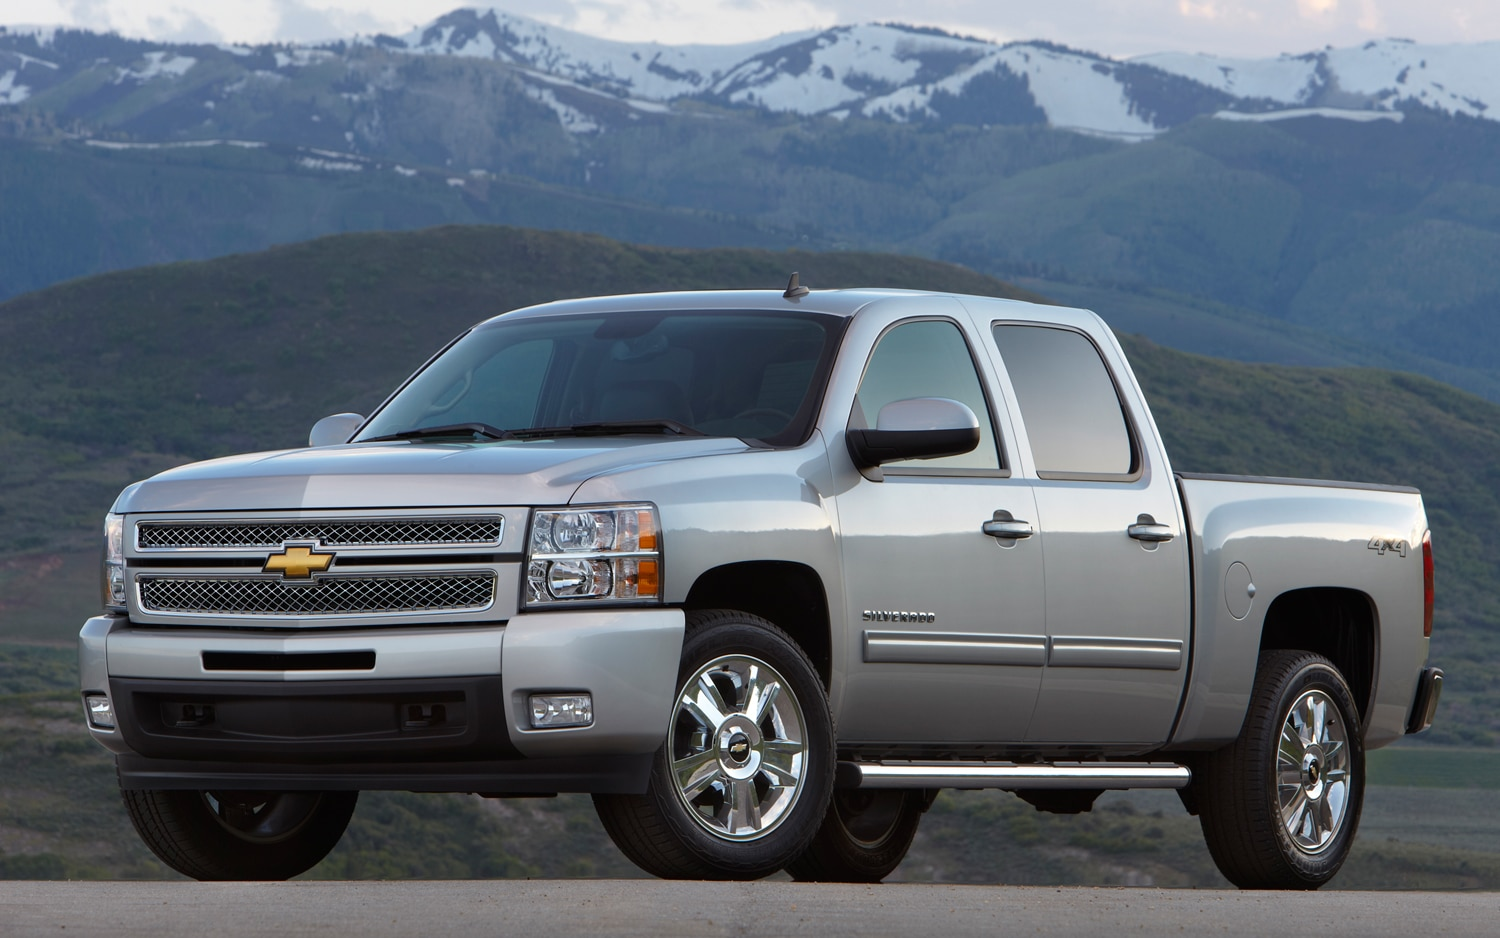 2013 Chevrolet Silverado LTZ Front Three Quarters